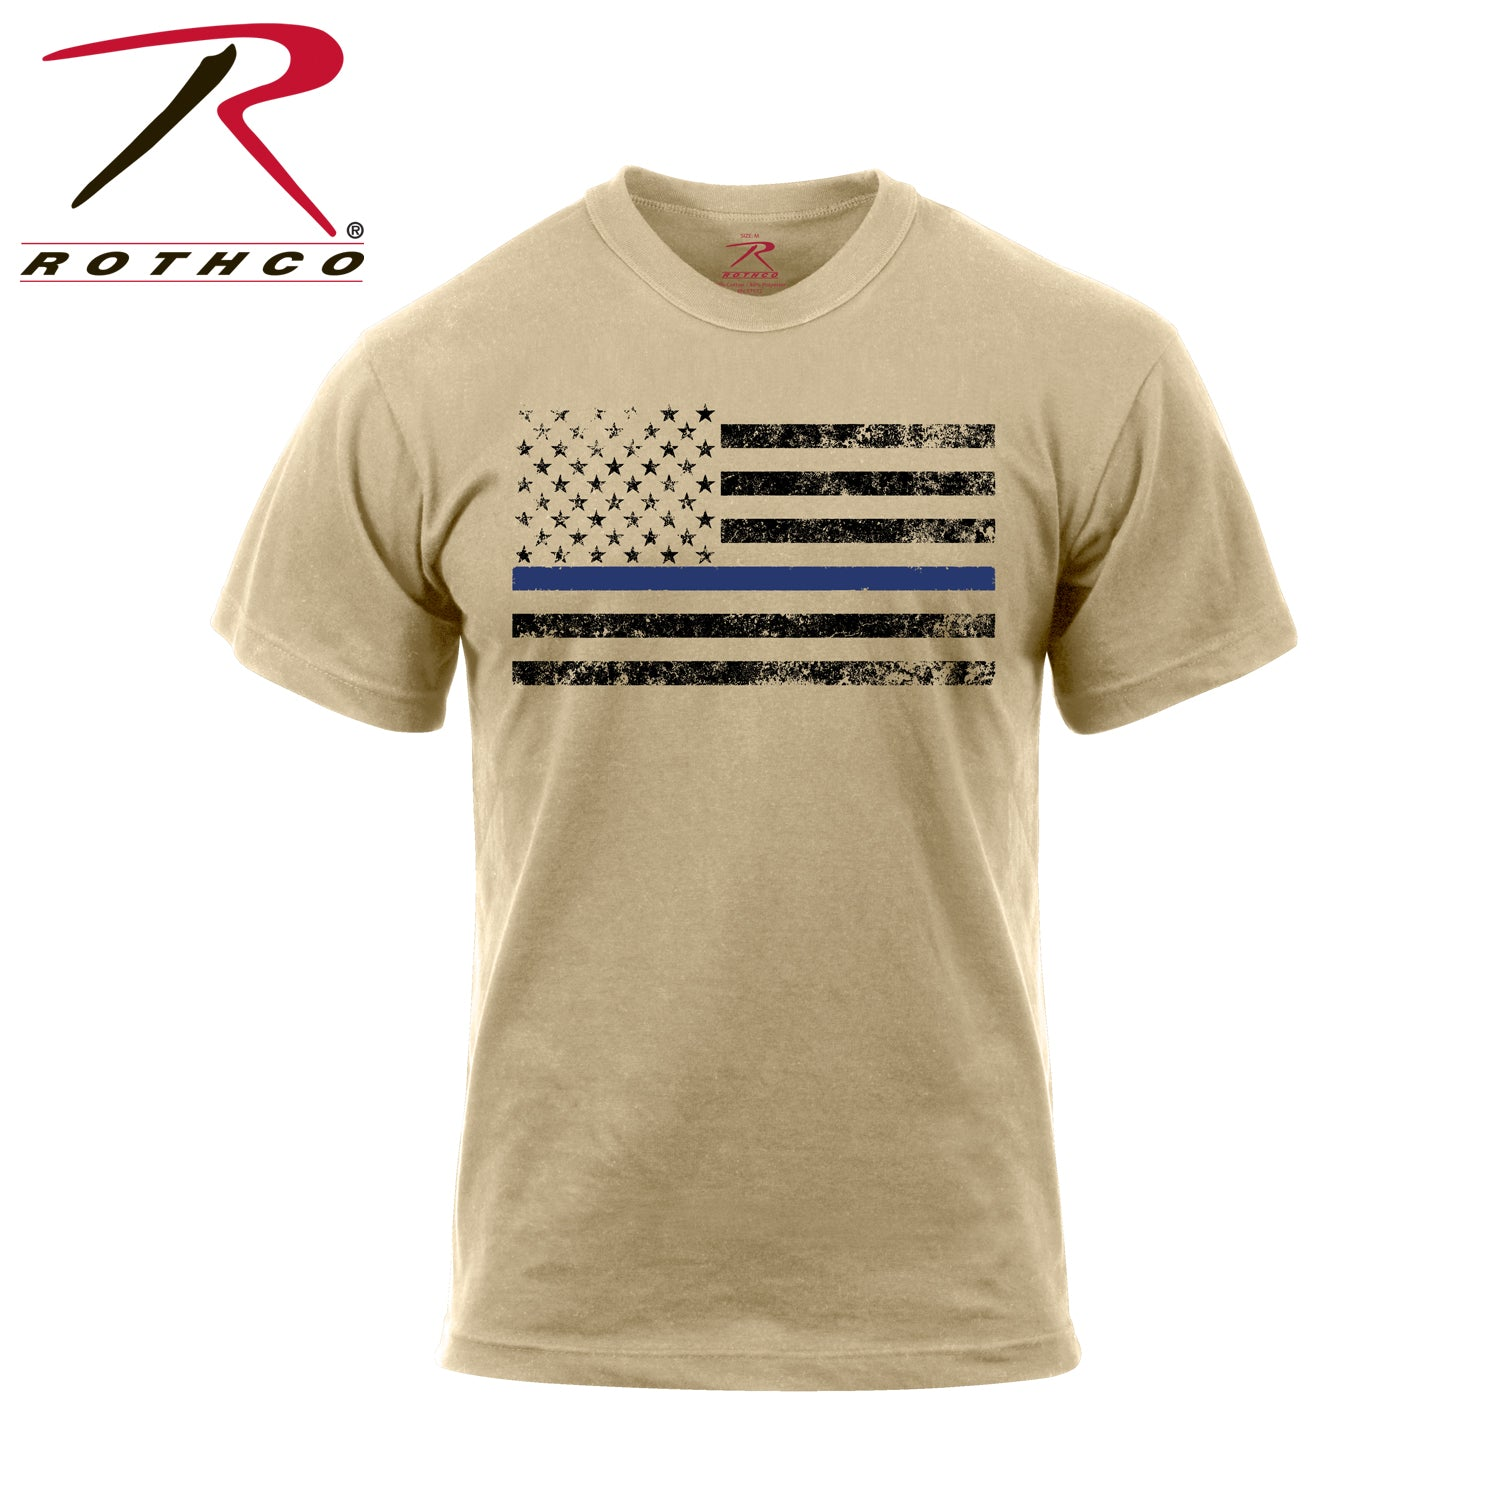 Rothco Thin Blue Line T-Shirt - red-diamond-uniform-police-supply